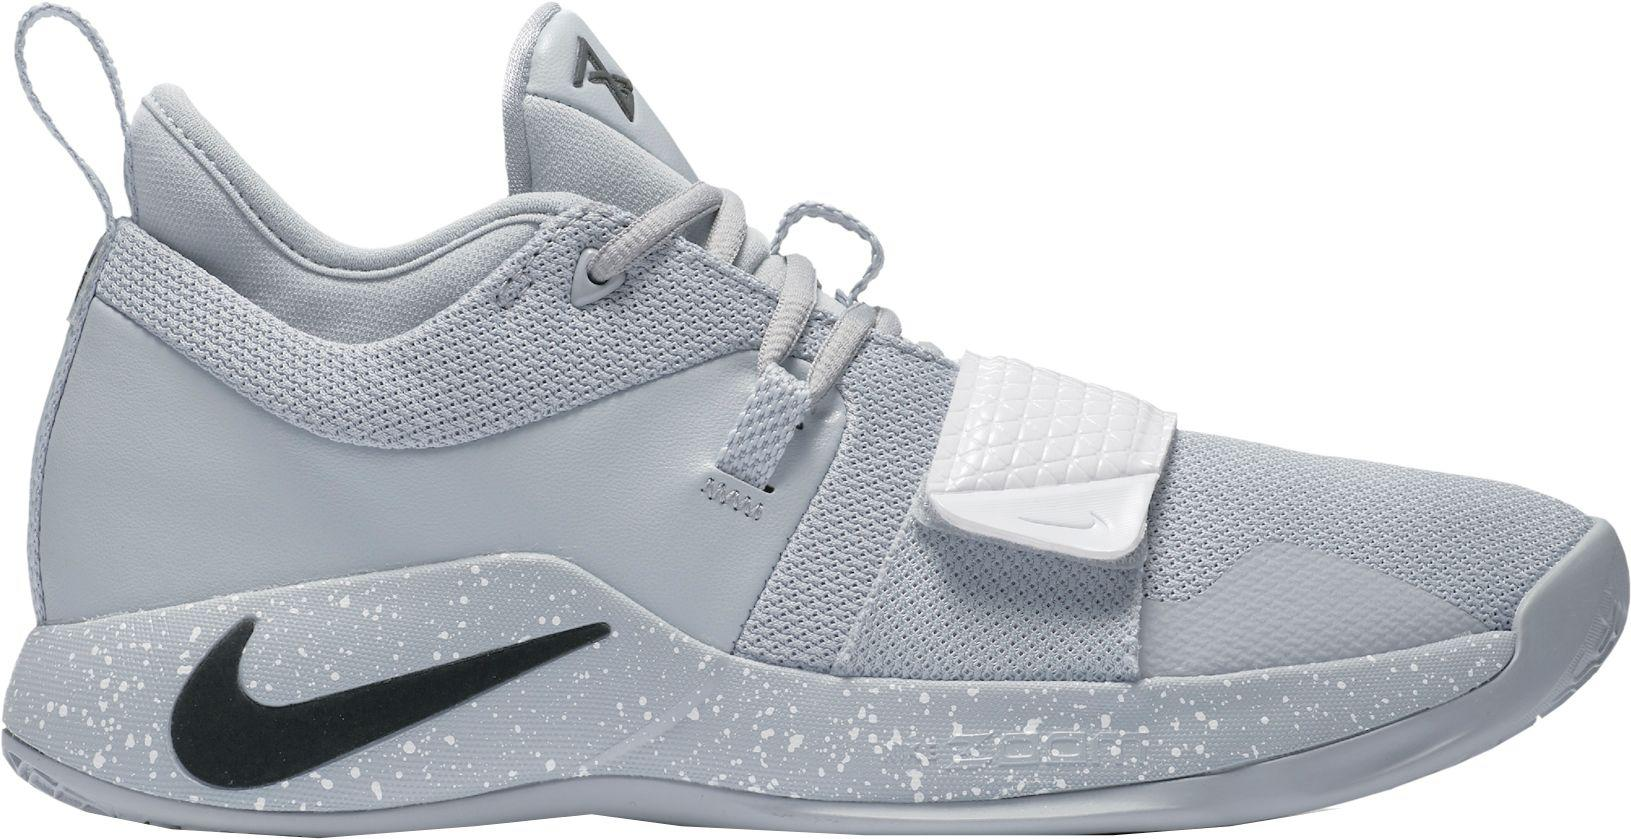 6f5e3ec3077 Nike Pg 2.5 Tb Basketball Shoes in Gray for Men - Lyst